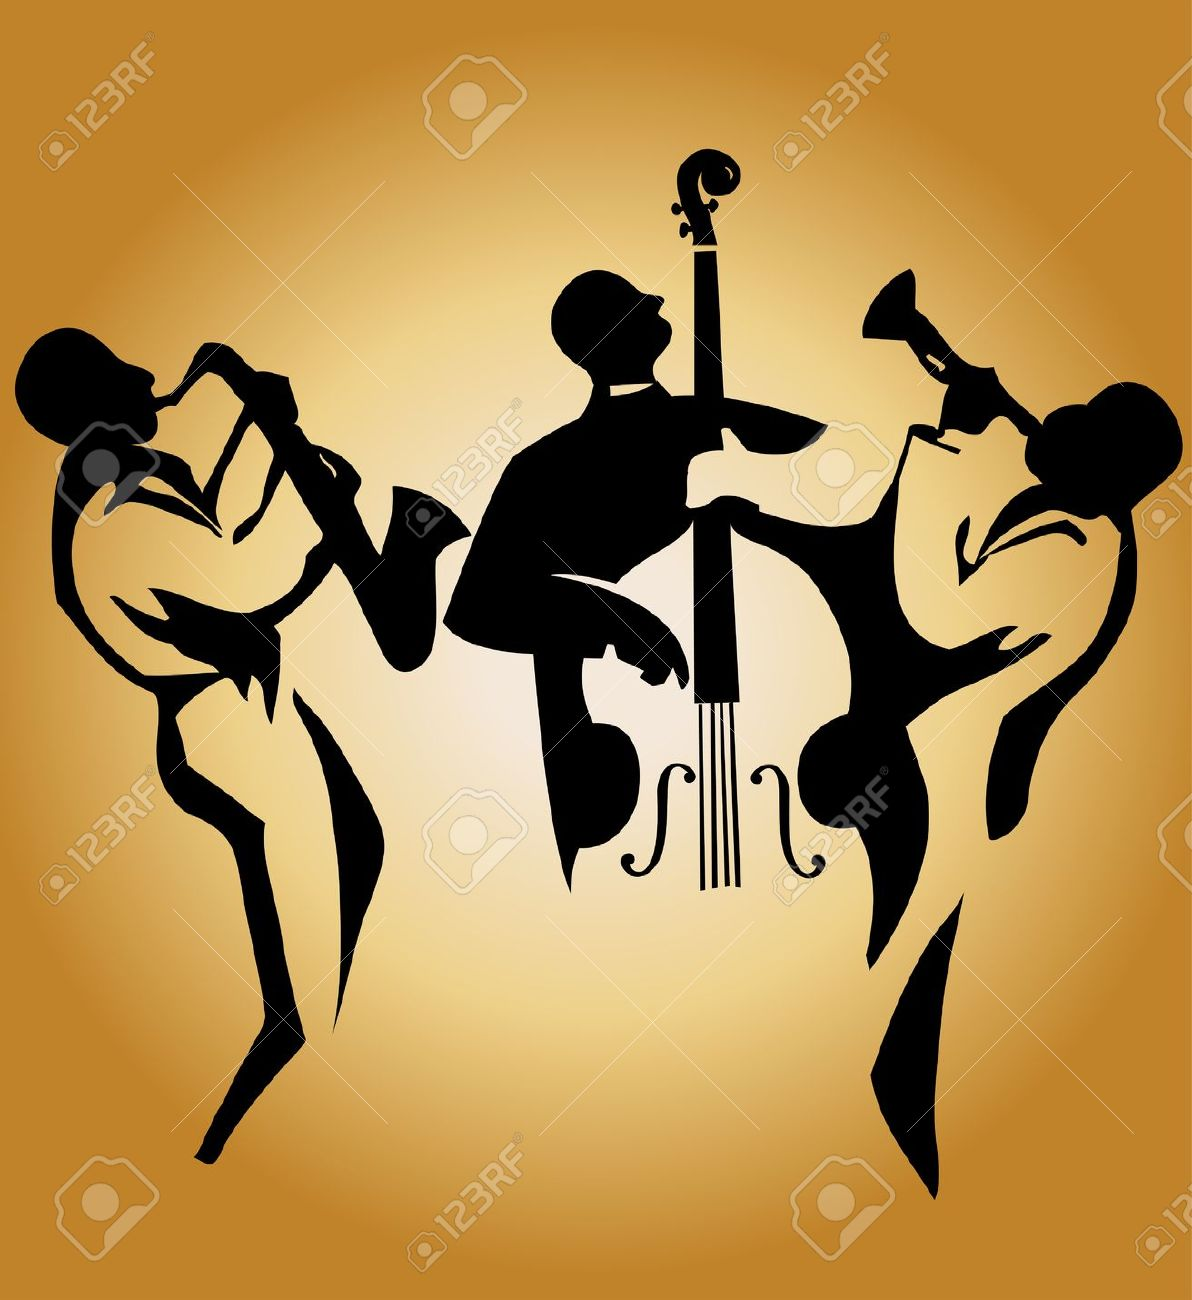 9,291 Band Silhouette Stock Vector Illustration And Royalty Free.